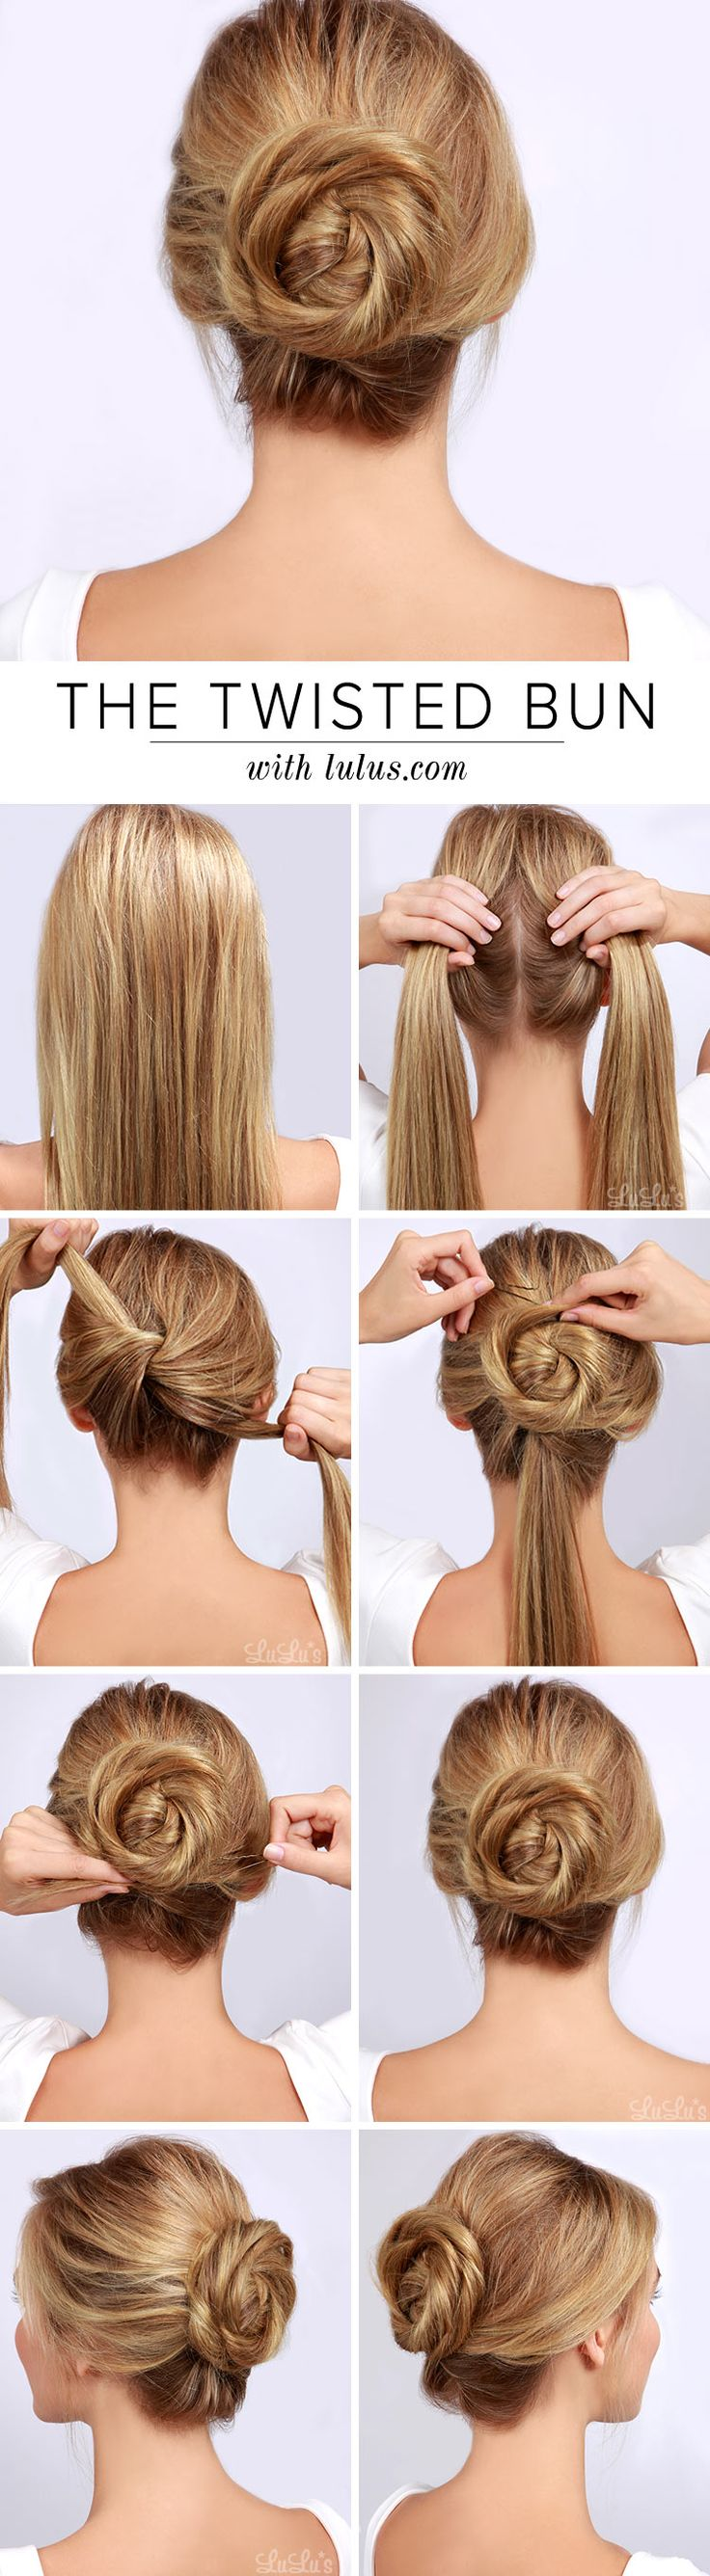 Twisted Bun Hair #Tutorial offers a few simple steps to make your dream #hair #style a reality.